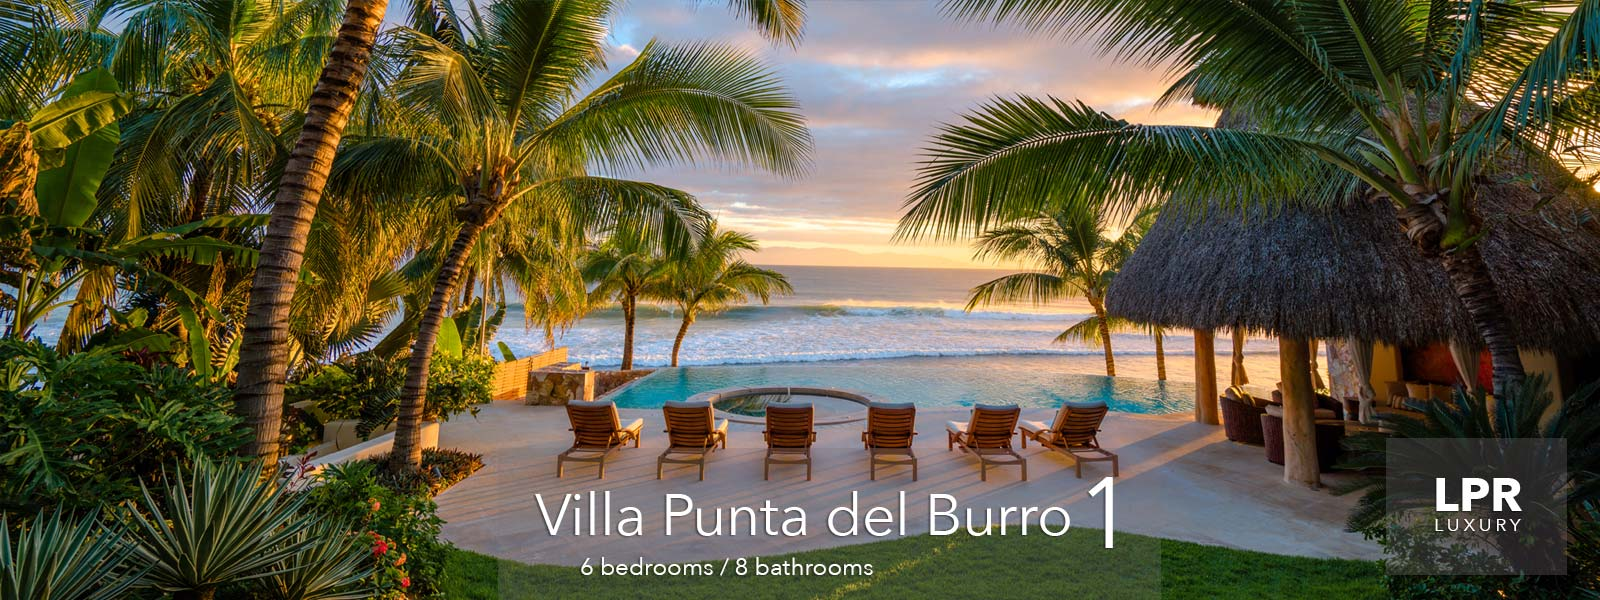 Villa Punta del Burro 1 - Punta de Mita Luxury Real Estate for Sale - Riviera Nayarit, Mexico